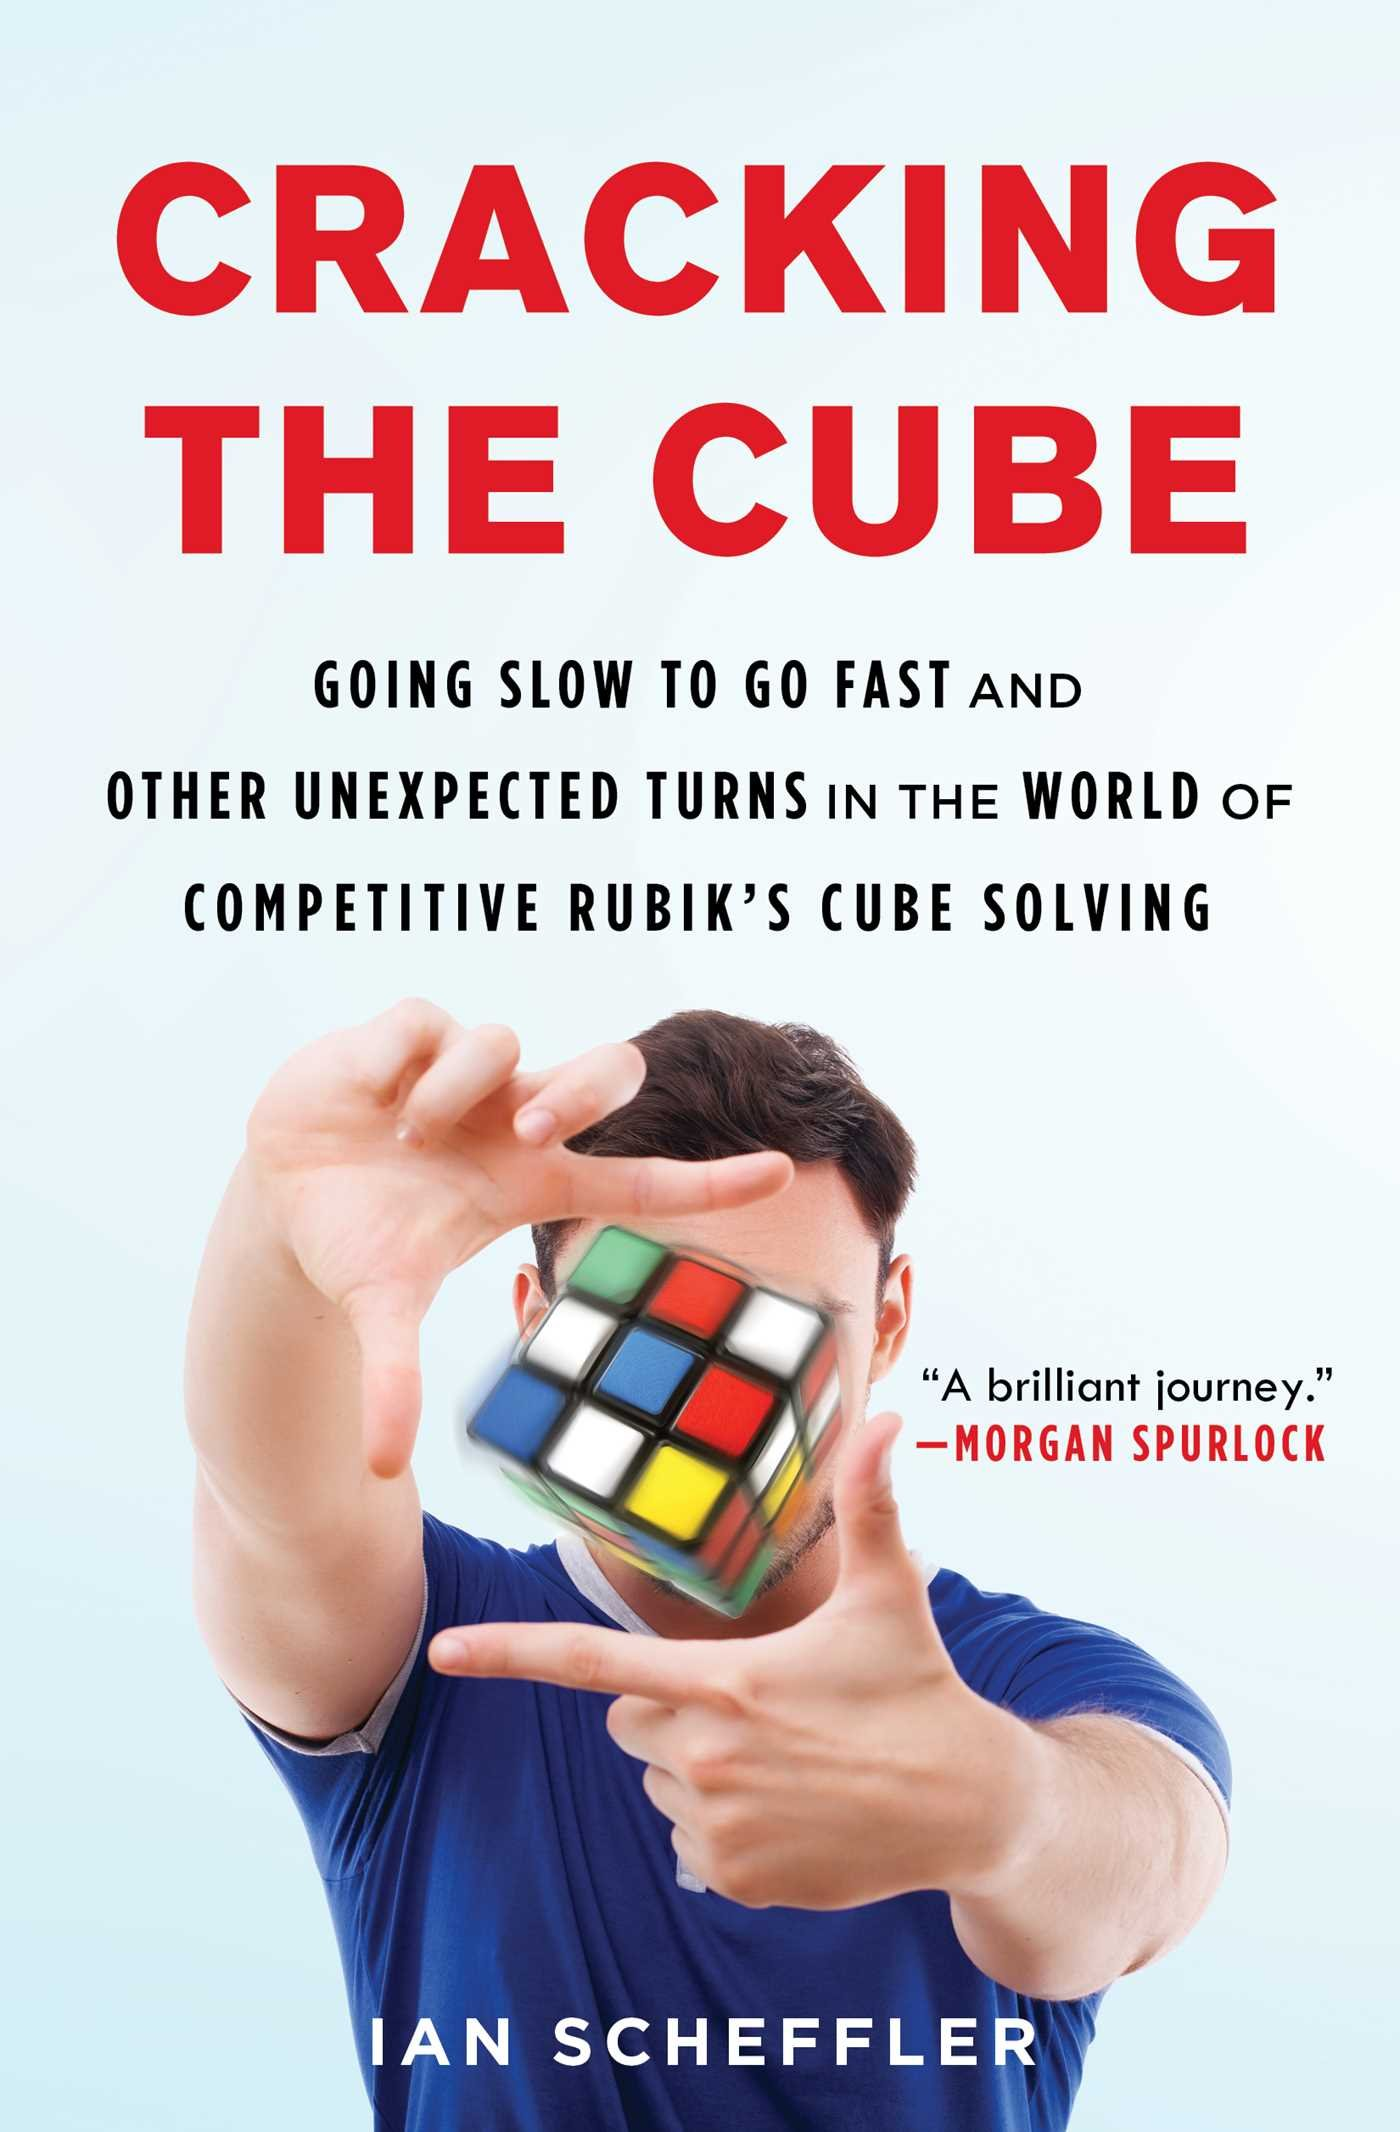 Amazon: Cracking The Cube: Going Slow To Go Fast And Other Unexpected  Turns In The World Ofpetitive Rubik's Cube Solving (9781501121937): Ian